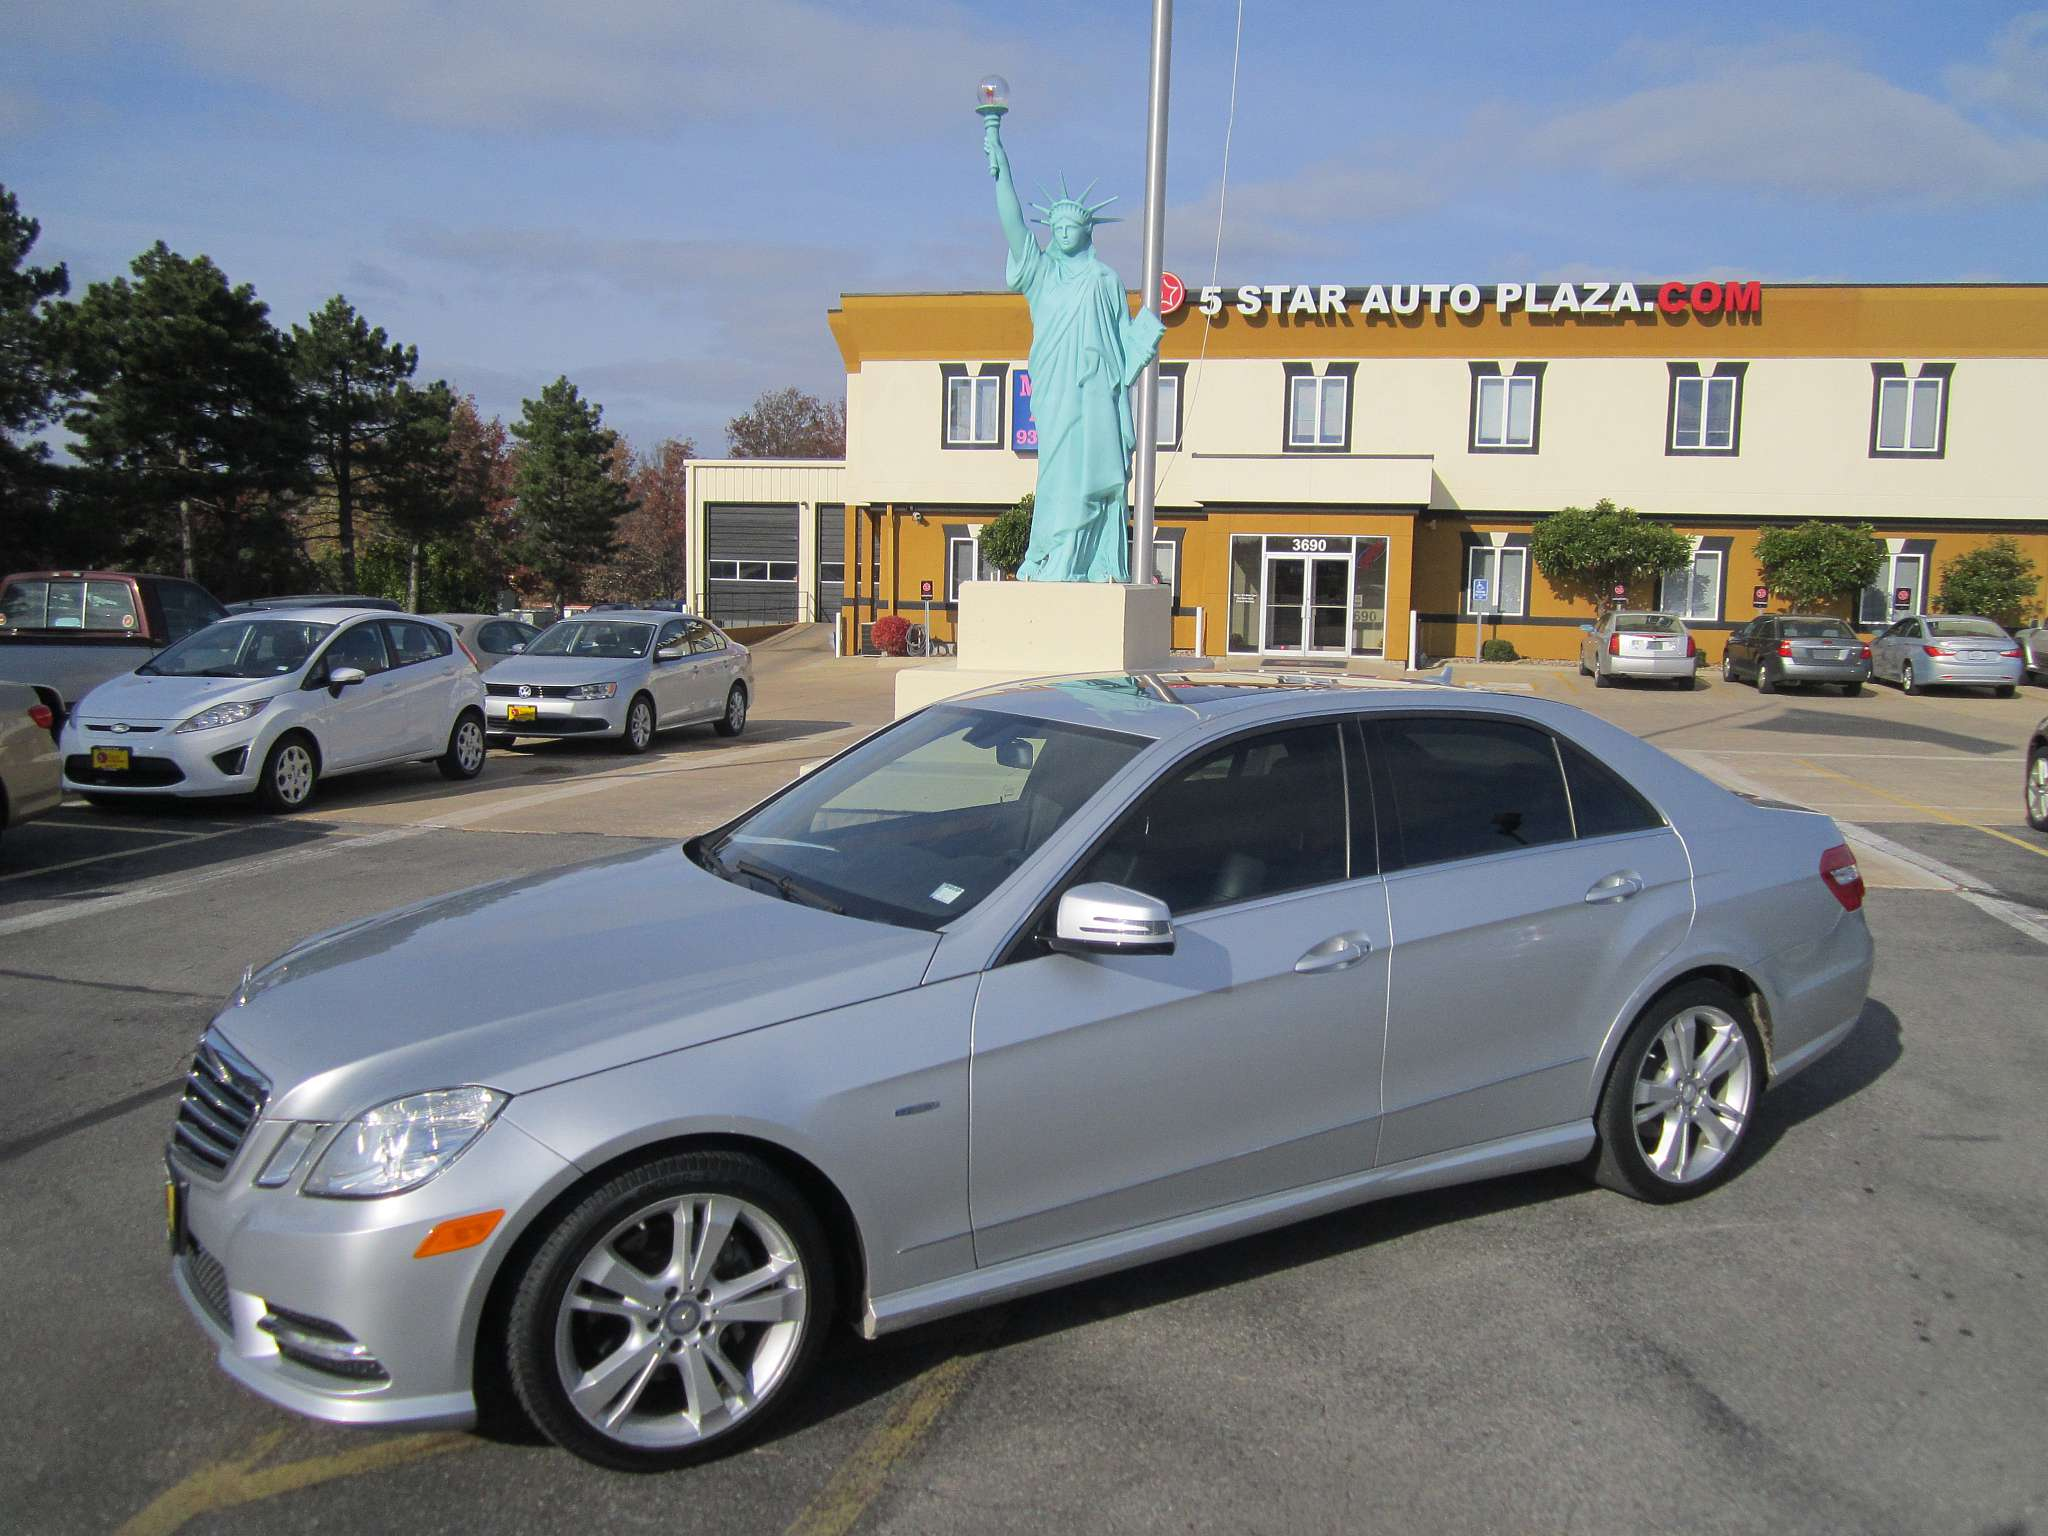 pre owned mercedes cars for sale in st louis